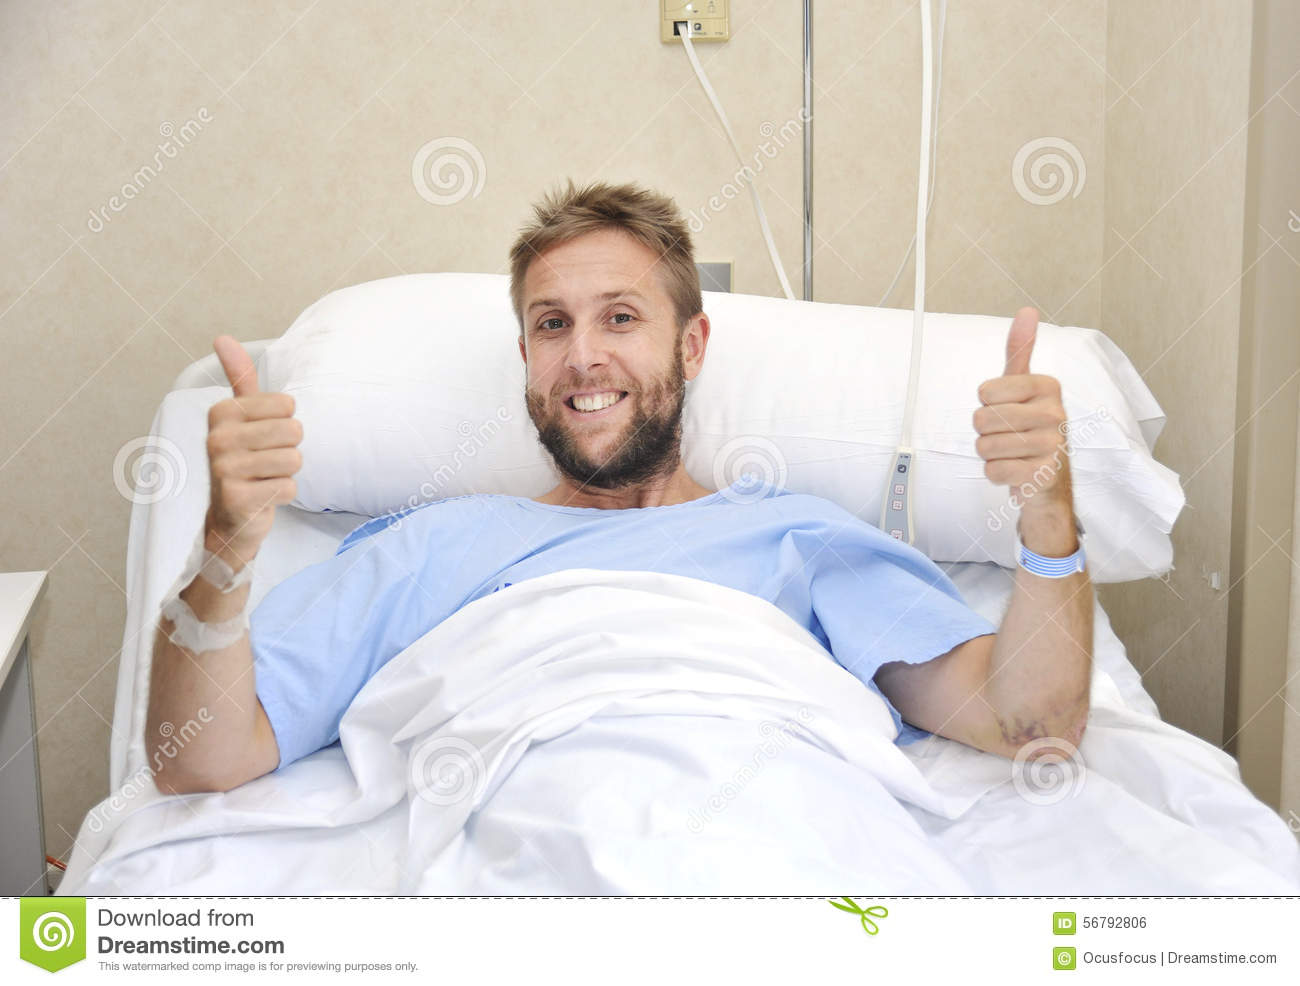 Images Of Sick Old Me In Hospital Bed : Young American man lying in bed at hospital room sick or ill but ...